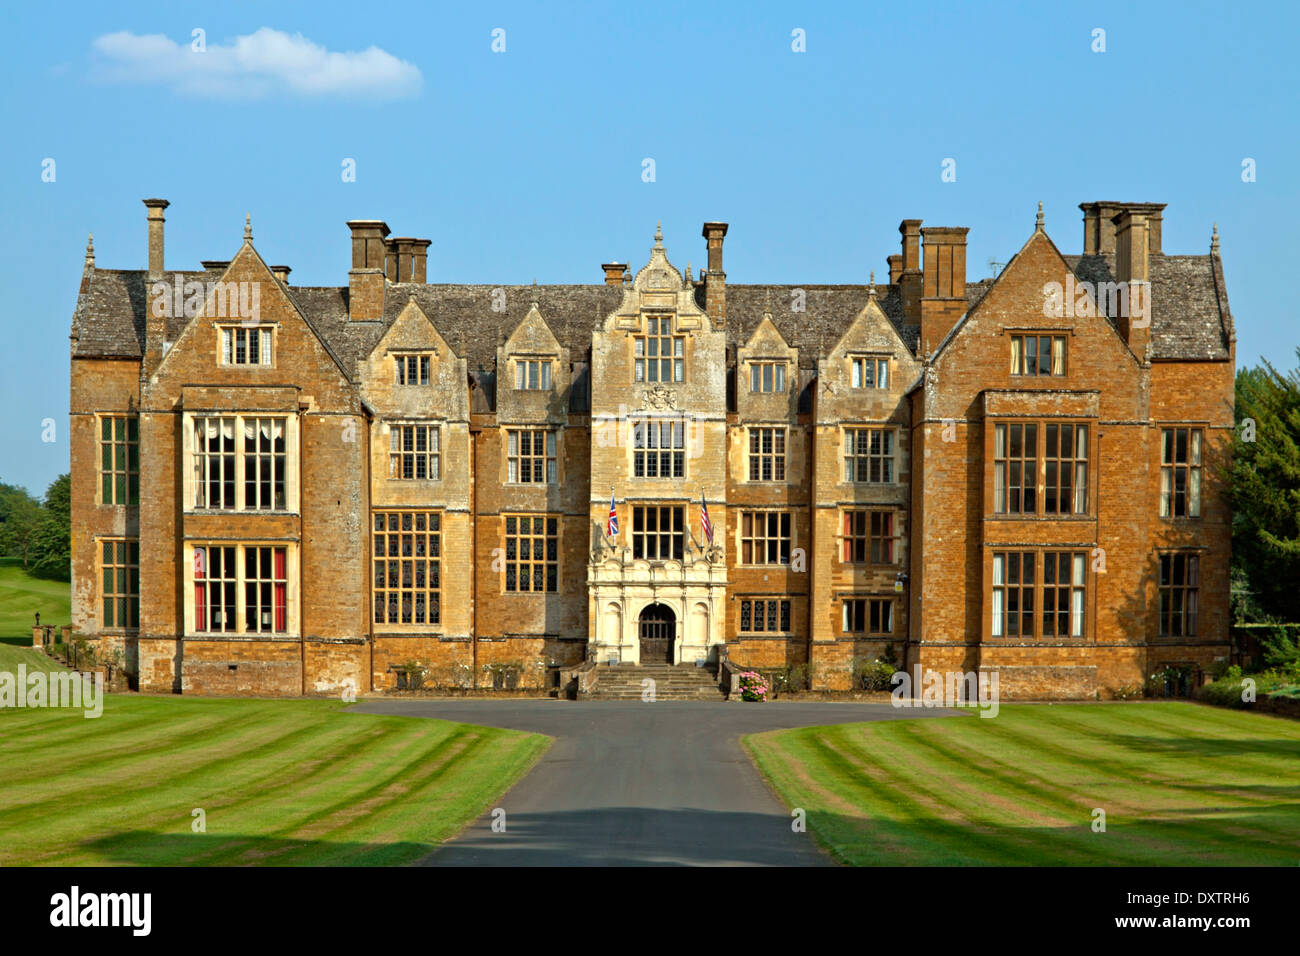 Frontal view of Wroxton Abbey, a Jacobean house, Wroxton, Oxfordshire, England, Great Britain. - Stock Image